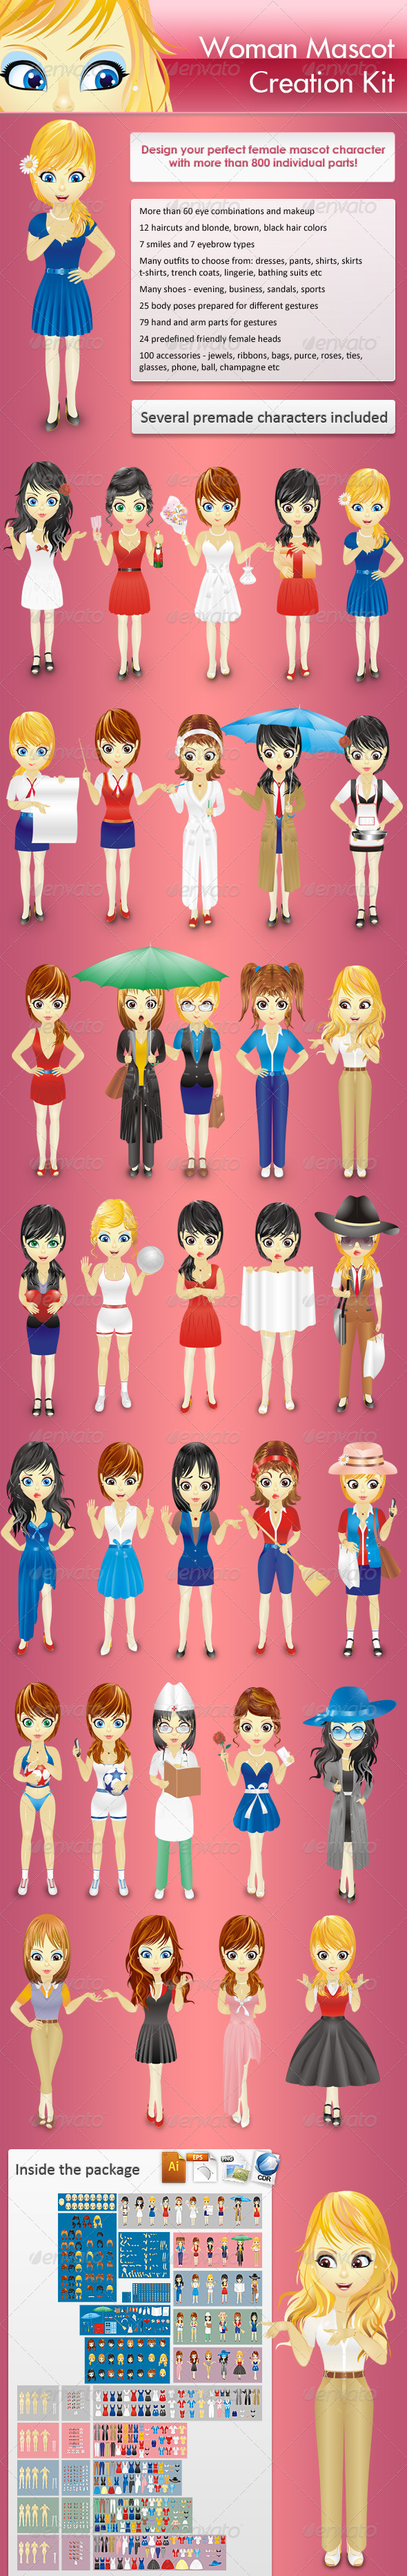 Woman Mascot Mega Creation Kit - People Characters